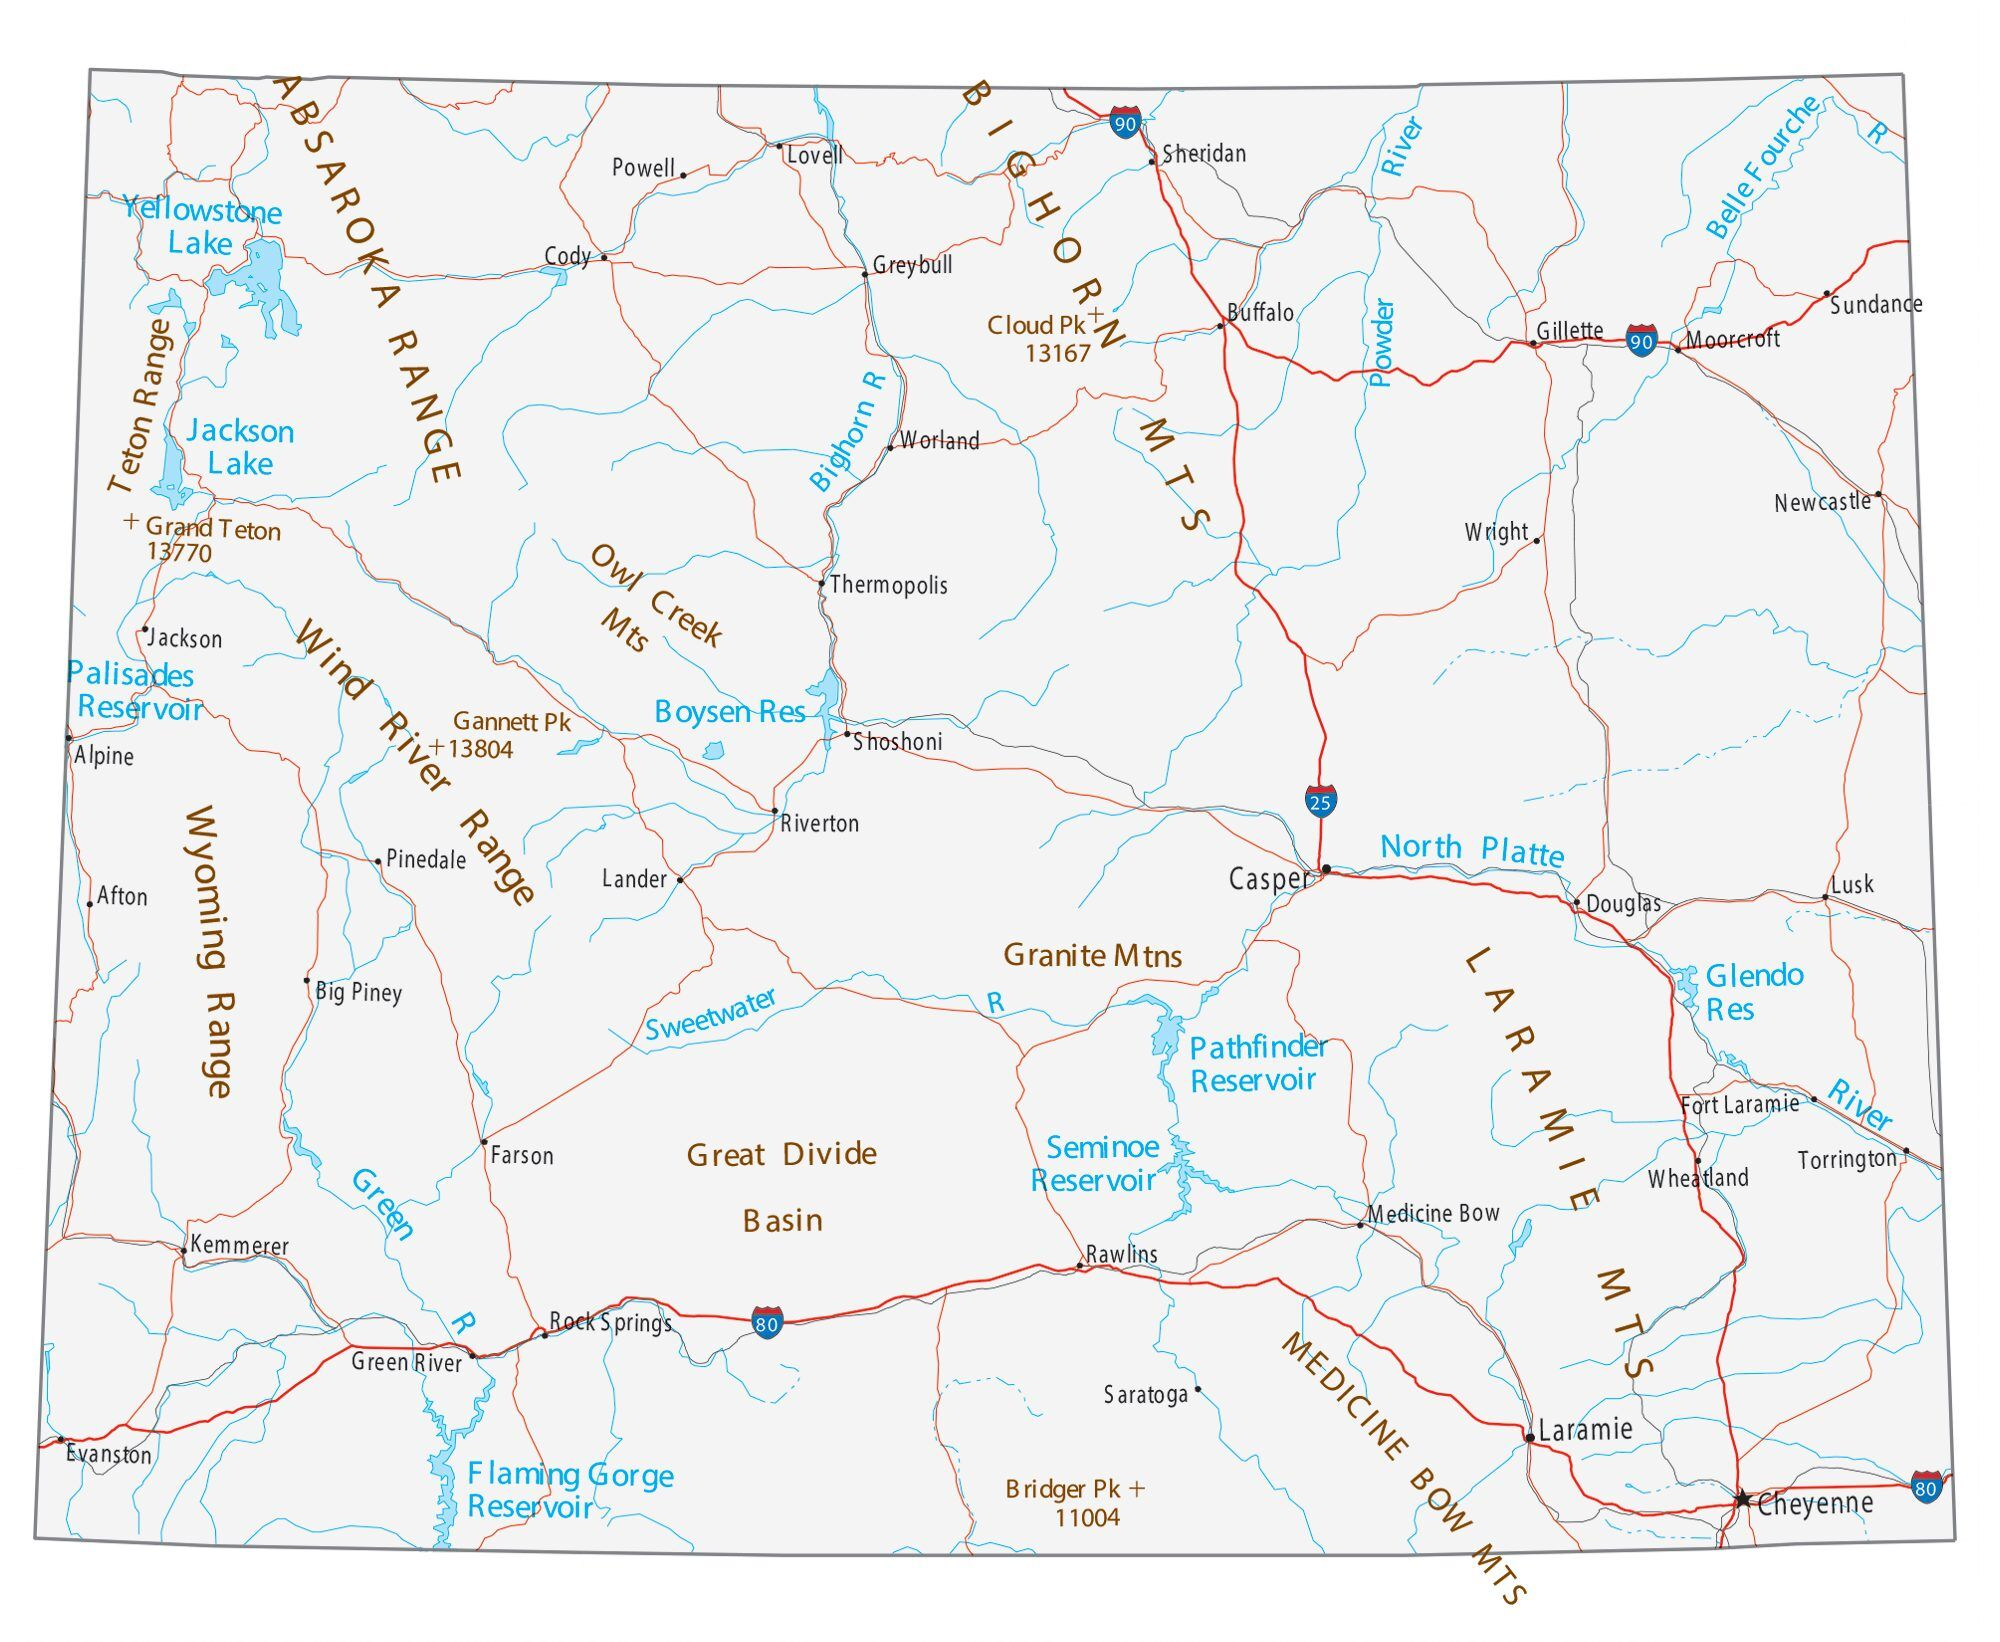 wyoming state map with cities Map Of Wyoming Cities And Roads Gis Geography wyoming state map with cities